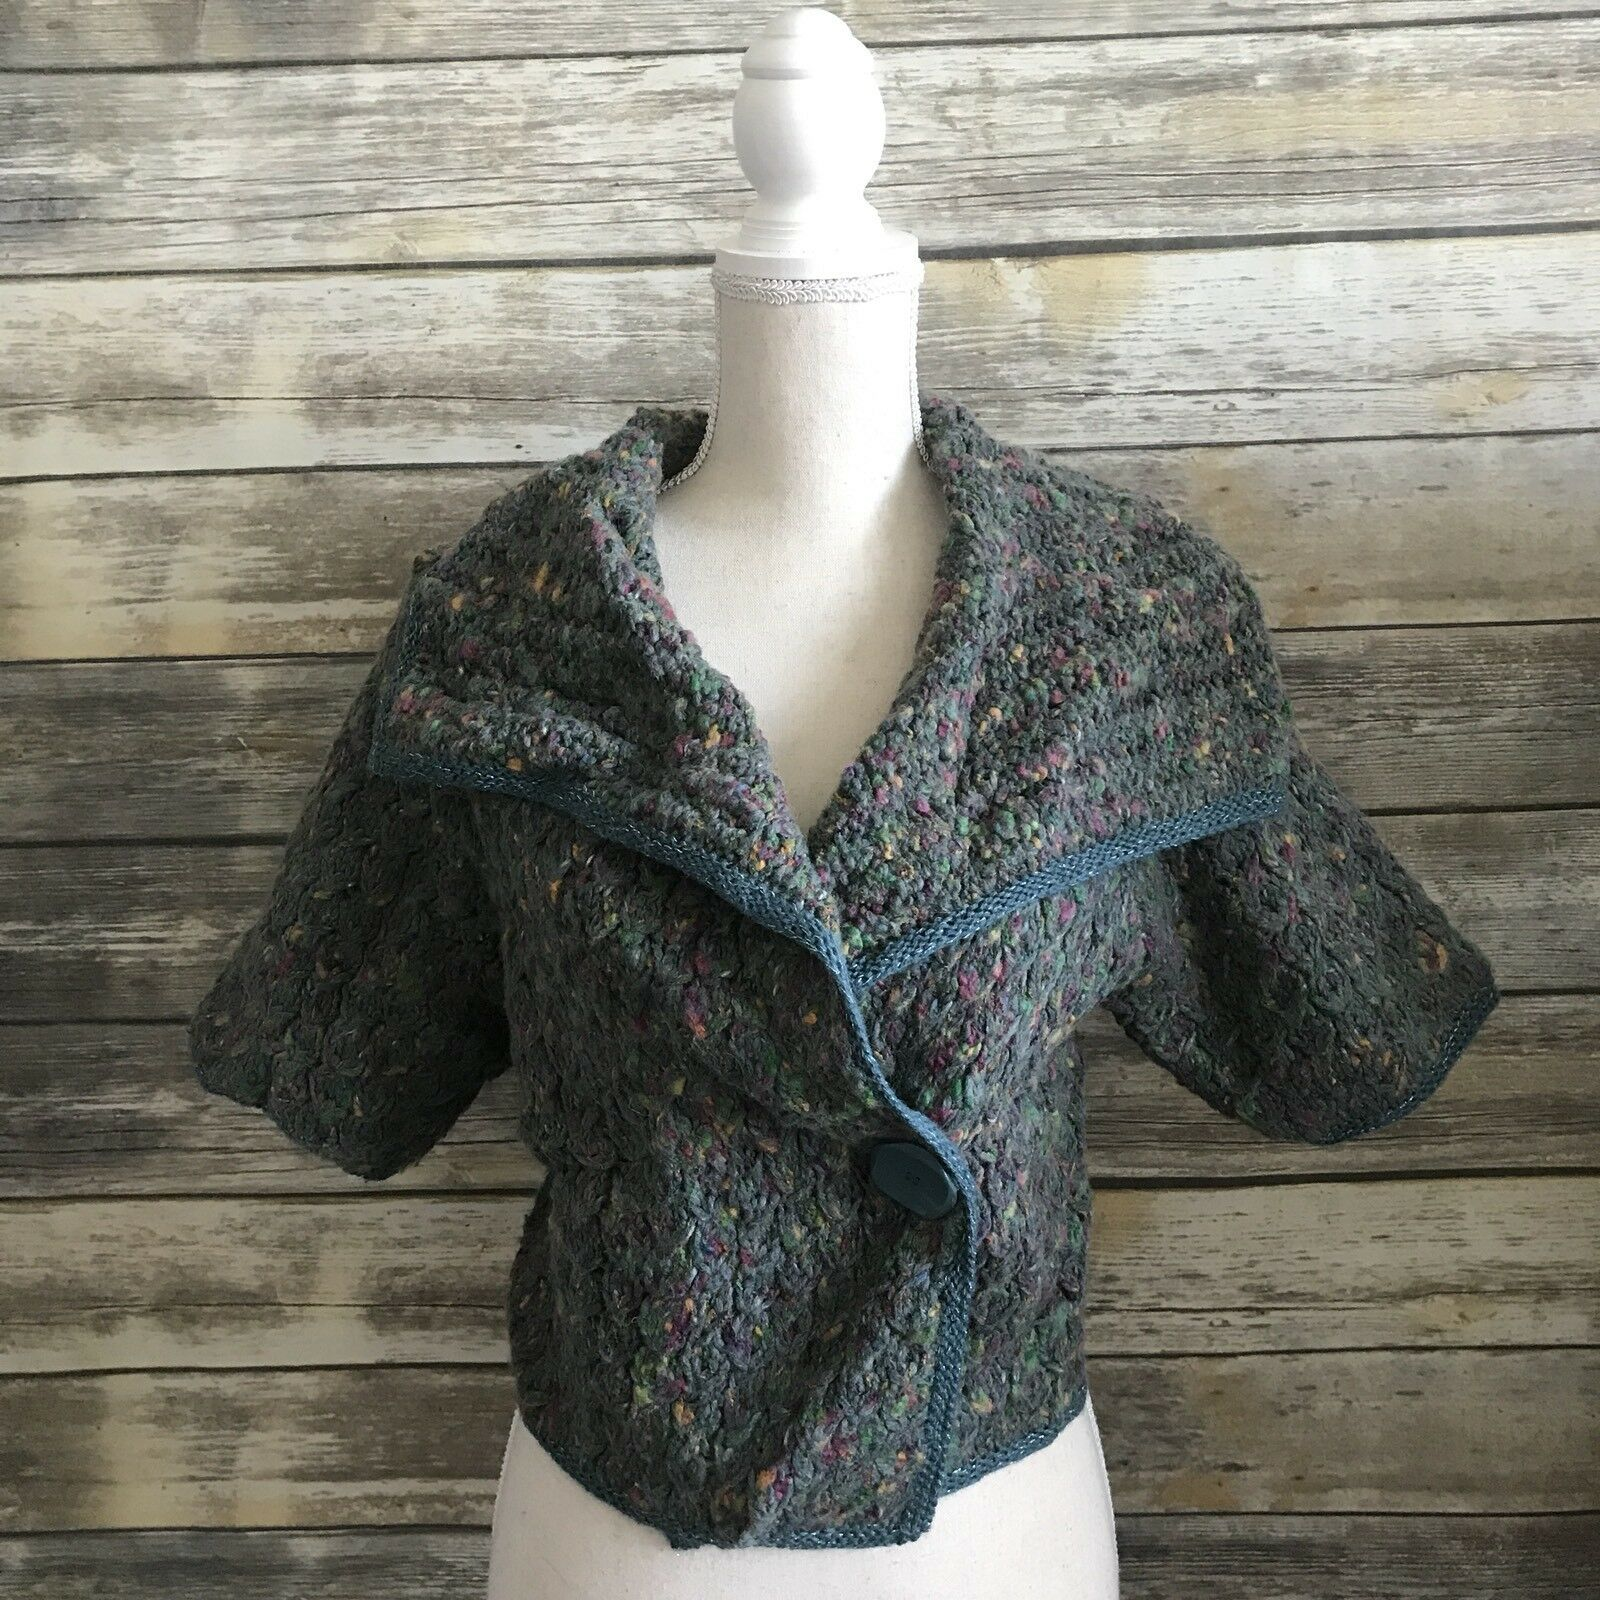 Anthropologie Sleeping on Snow Women's Green Cropped Knit Cardigan - Size M